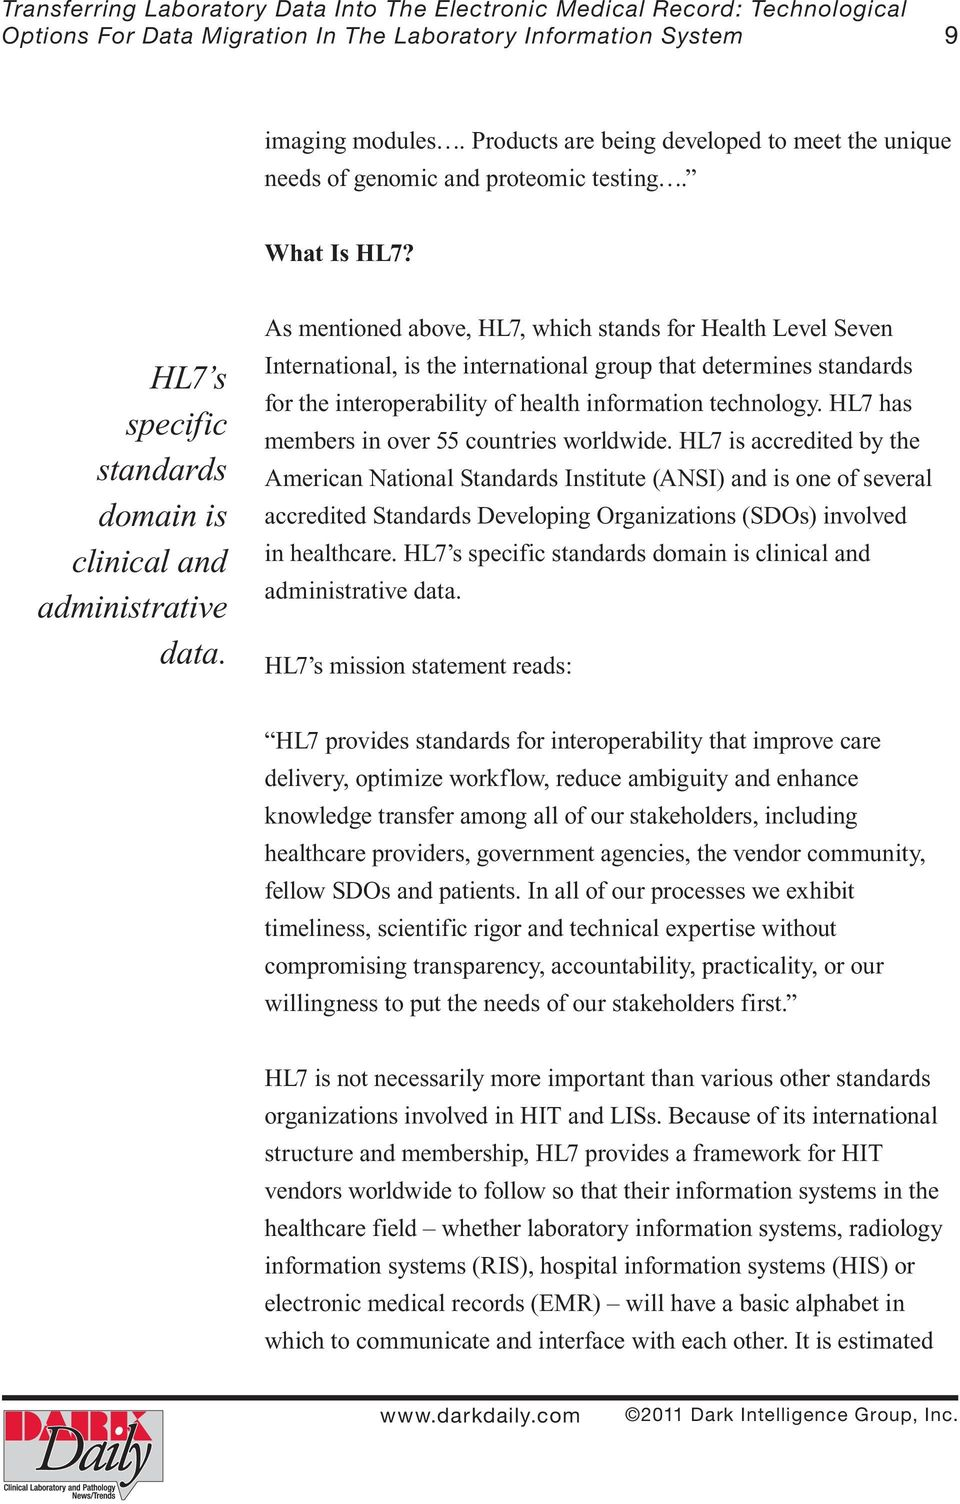 As mentioned above, HL7, which stands for Health Level Seven International, is the international group that determines standards for the interoperability of health information technology.